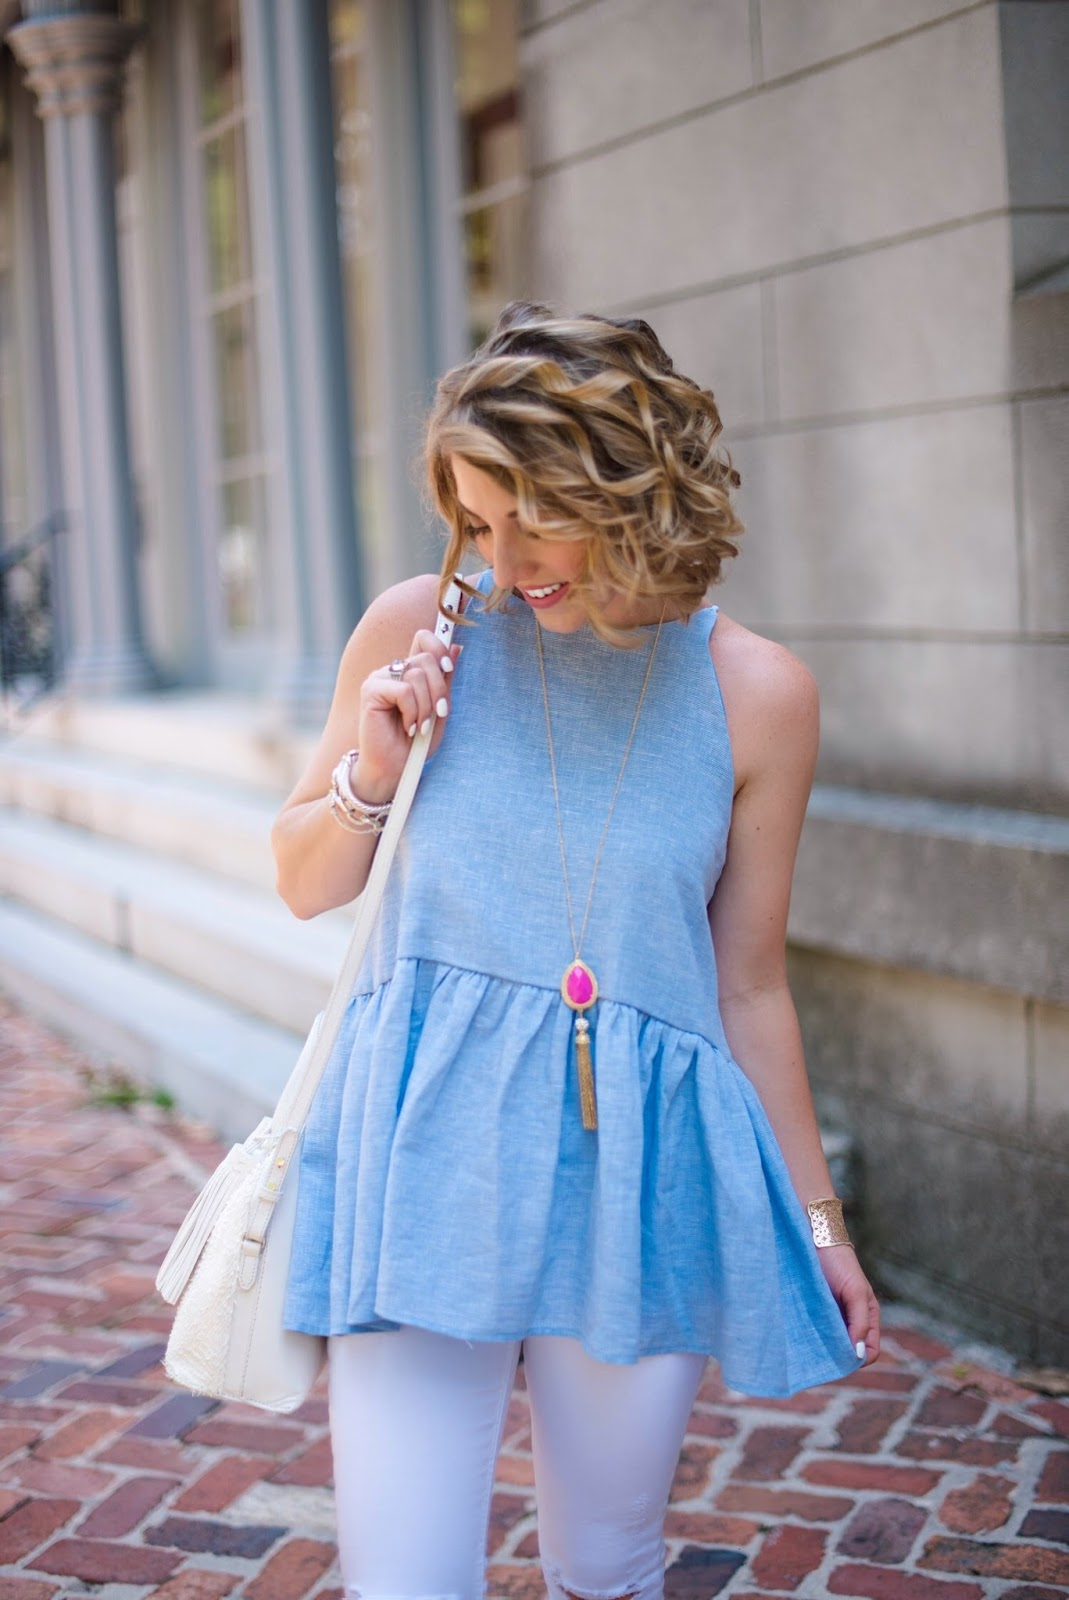 Blue Peplum Top - Click through to see more on Something Delightful Blog!